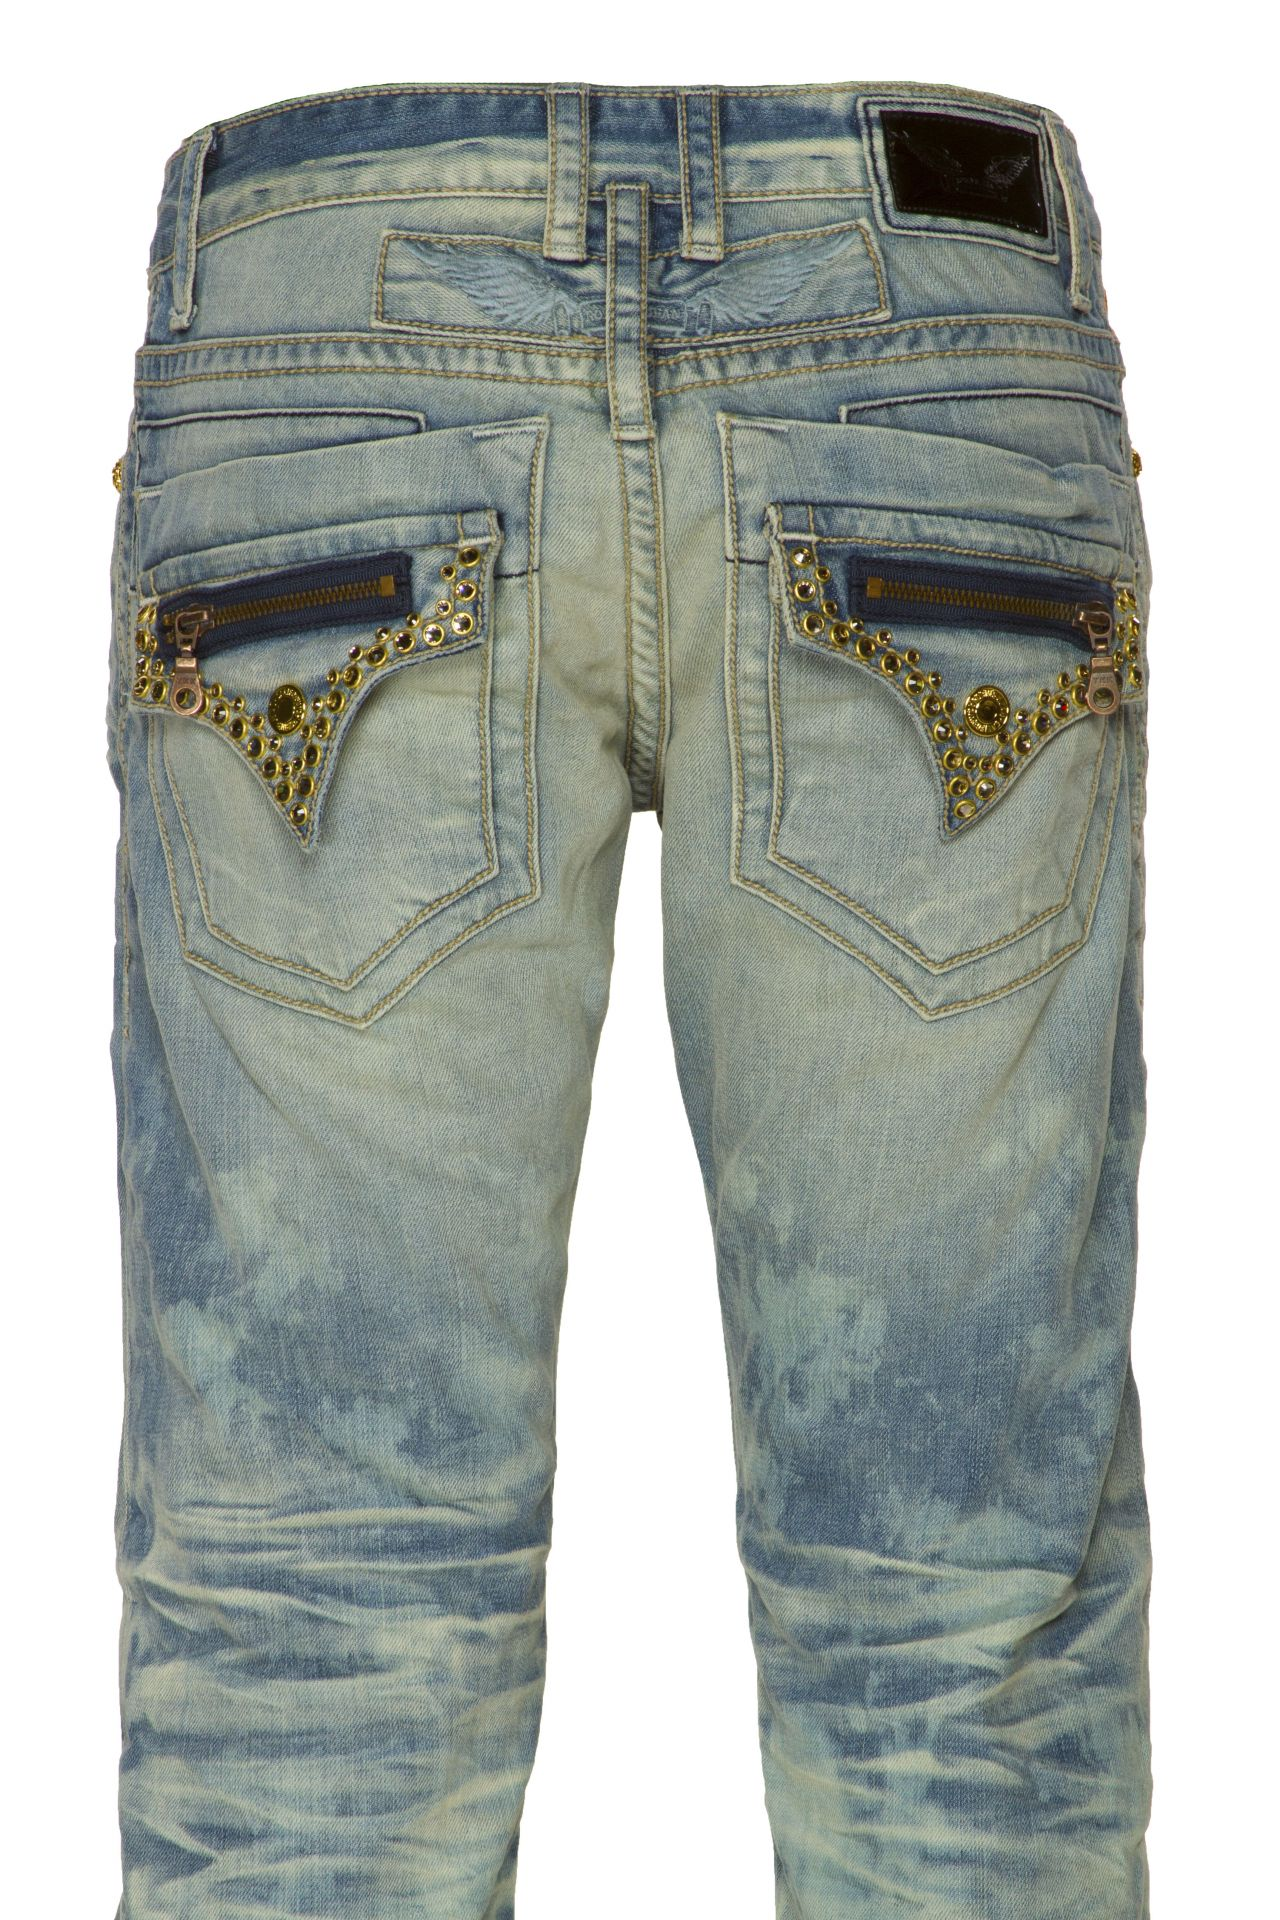 ROBINS MINI FLAP WITH CRYSTALS IN LIGHT WASH BLUE